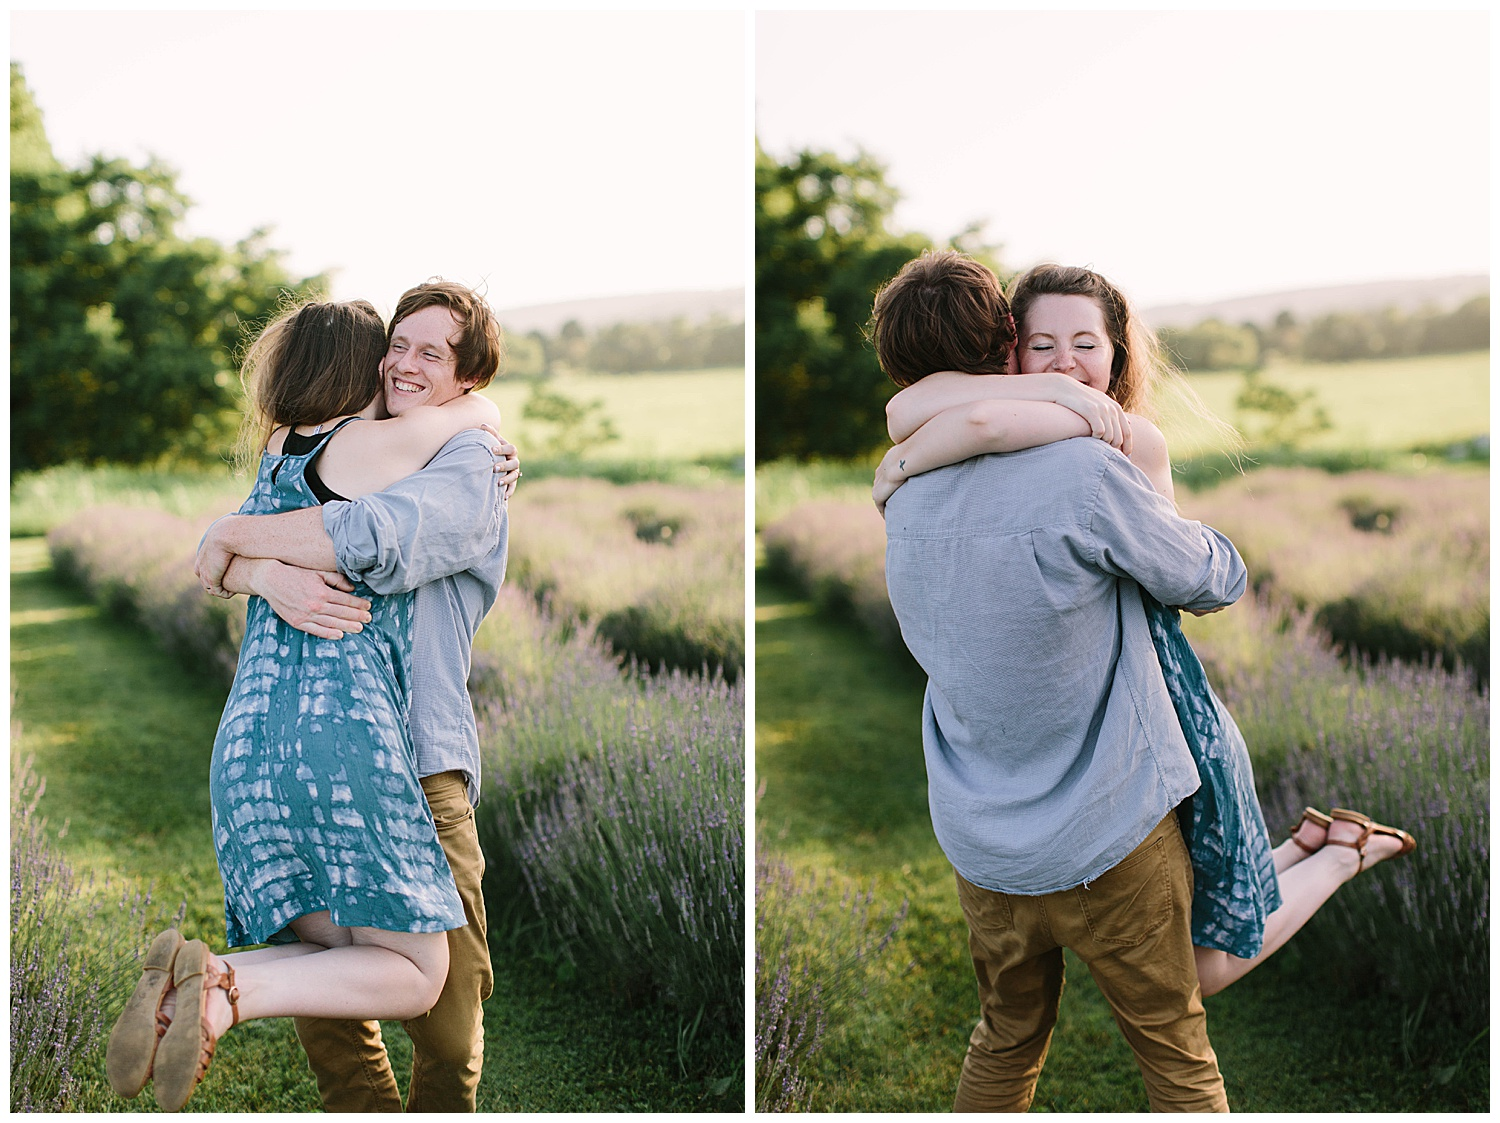 lavender.photoshoot.lavenderfarm.kentucky.engagement.anniversary.photography-53.jpg